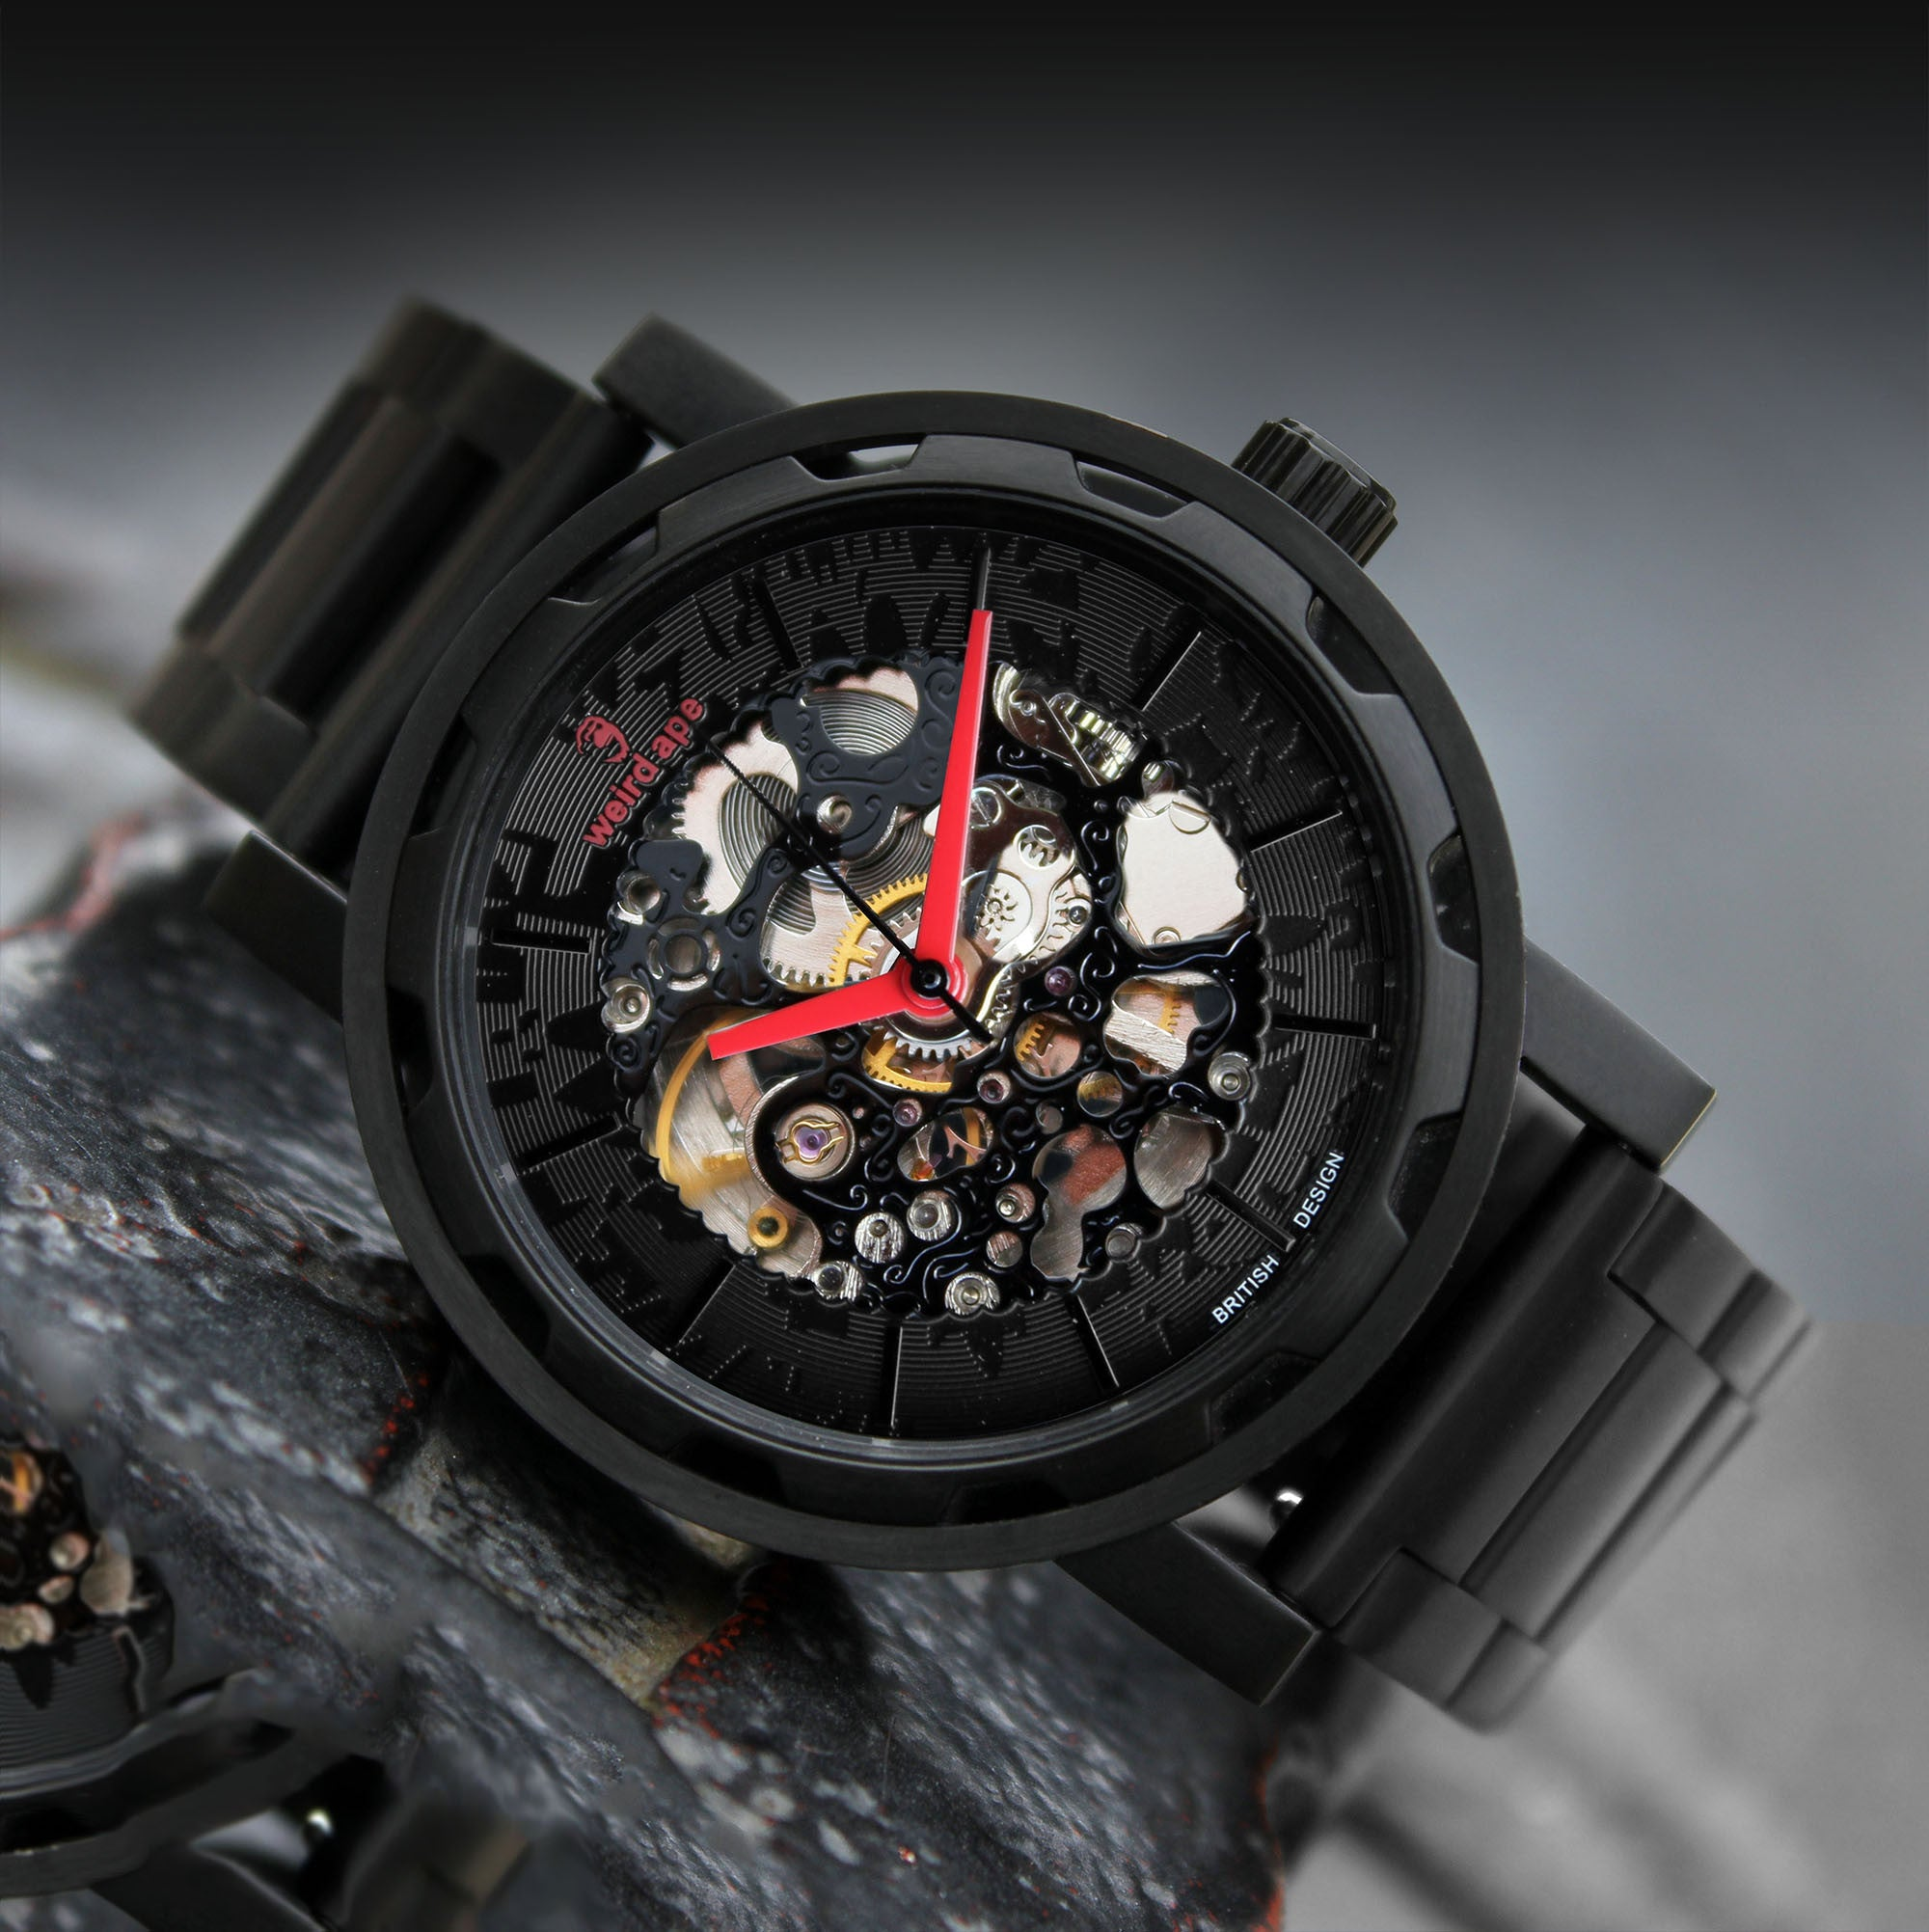 A picture of a black mechanical watch with red hands and a metal strap.